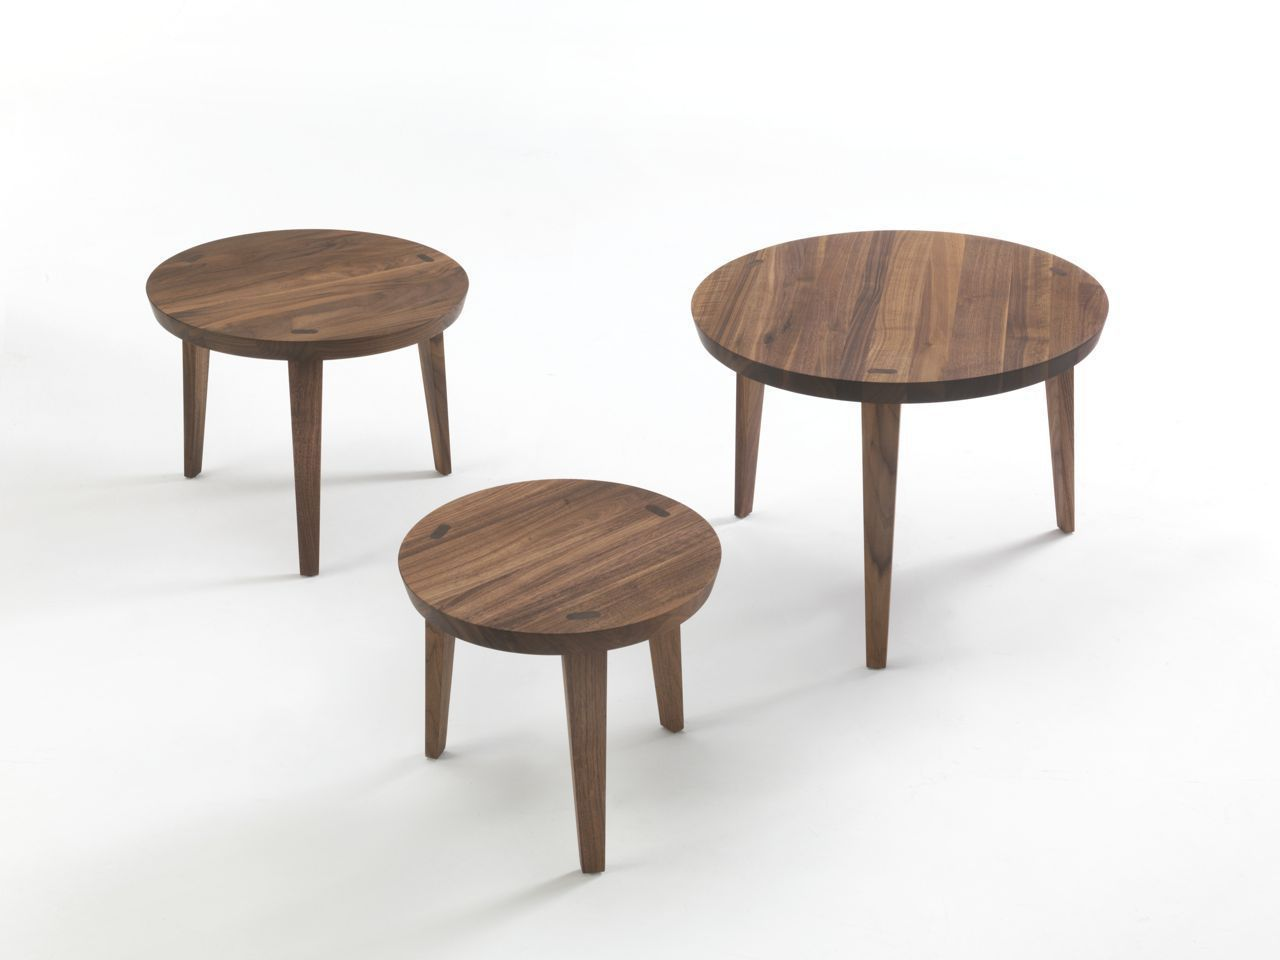 Superior Contemporary Nesting Tables / Solid Wood / Round ...